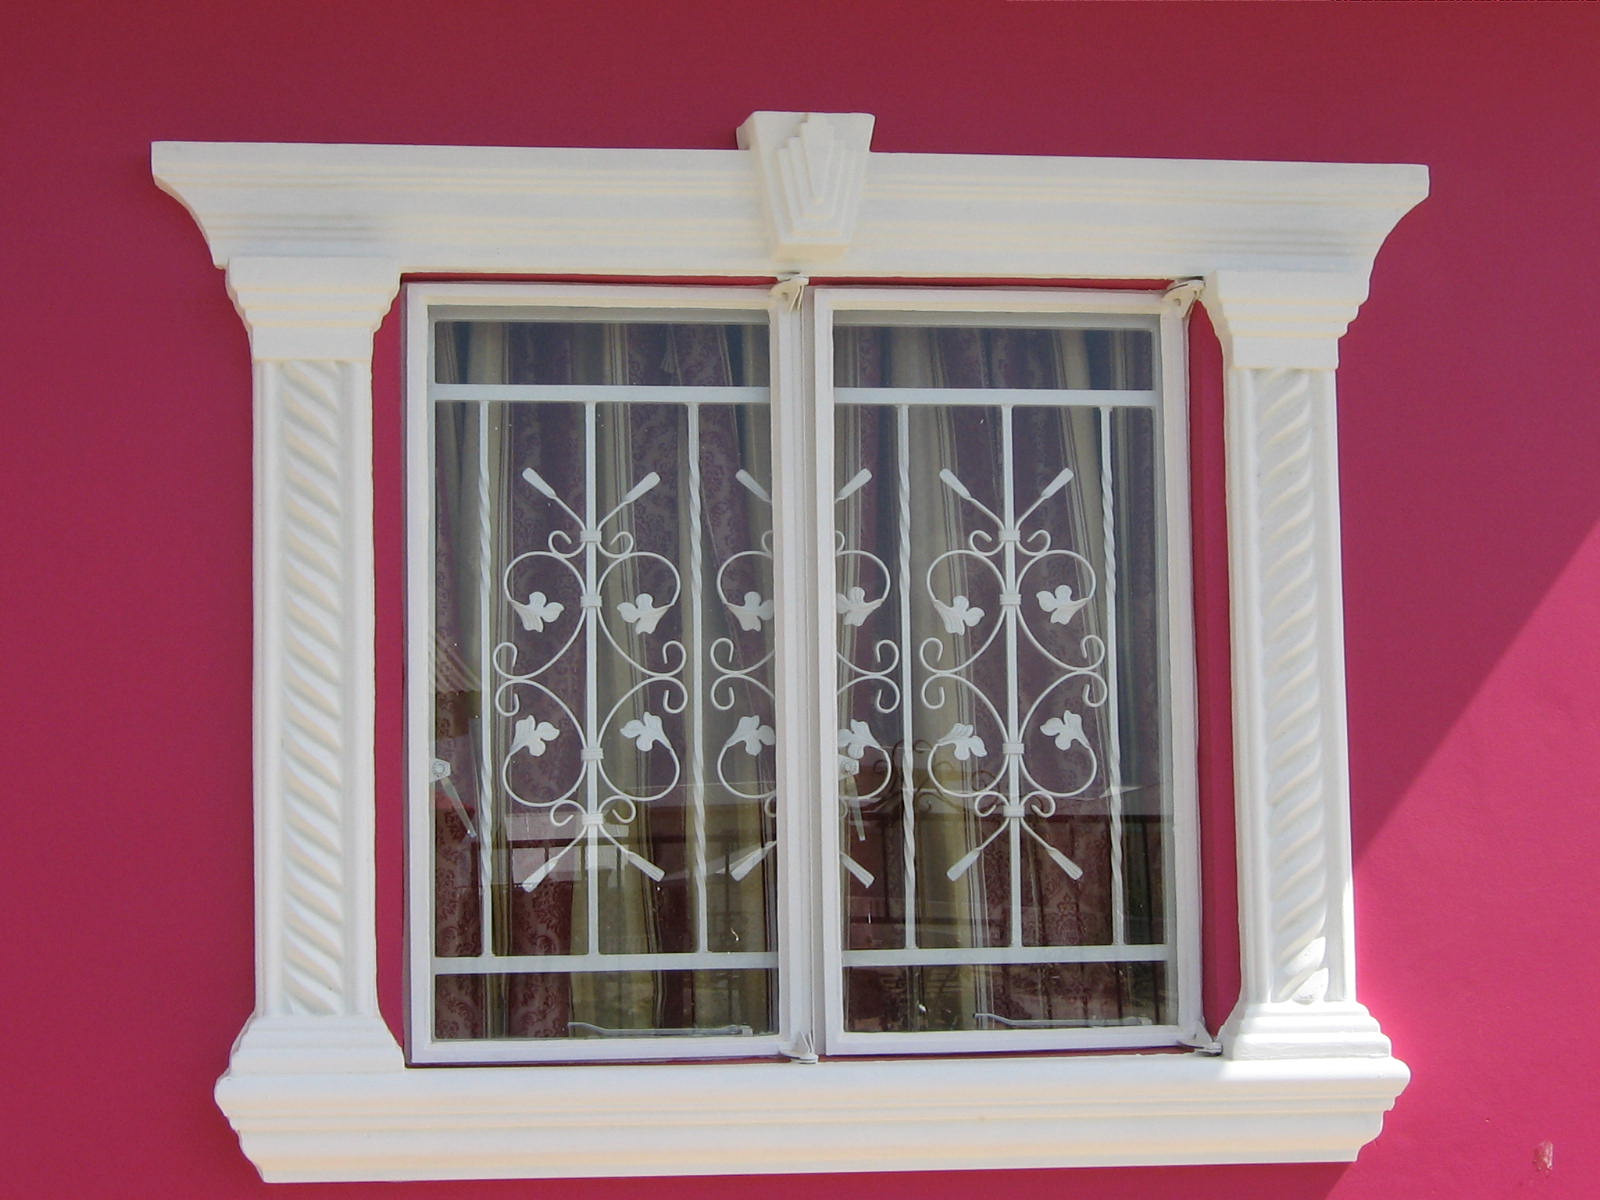 Window molding design manificent nice exterior window for Window design molding